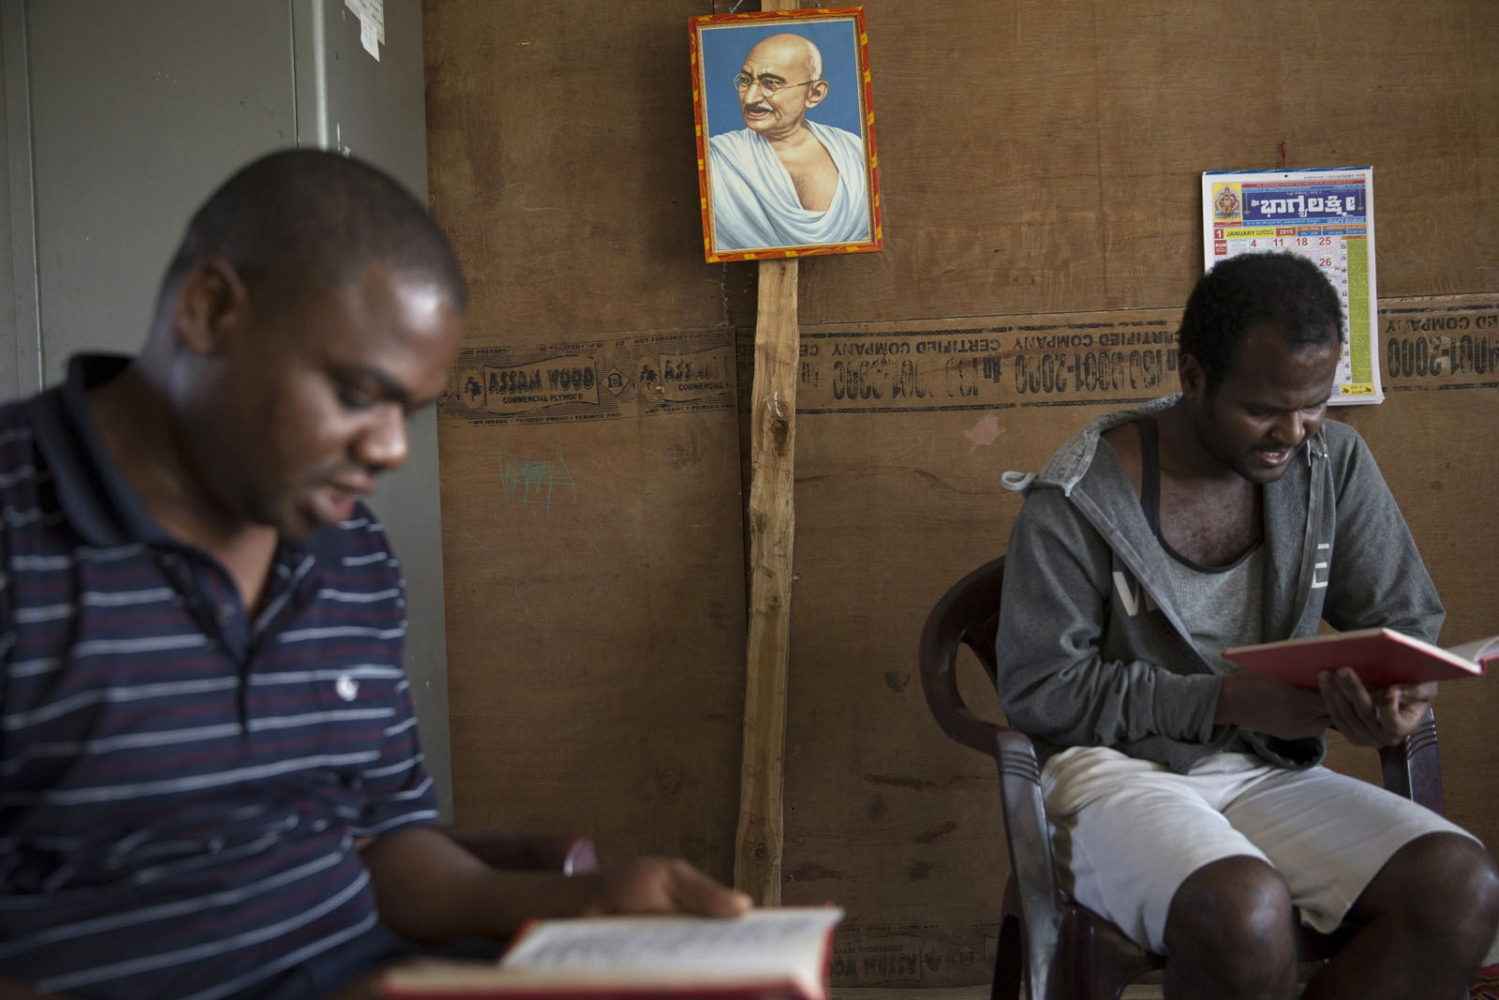 Head teacher Prakash Christian (left) and Mohan Sidi (right) take part in a bible reading session below a portrait of Mahatma Gandhi at a remote boarding school. Uttara Kannada, India